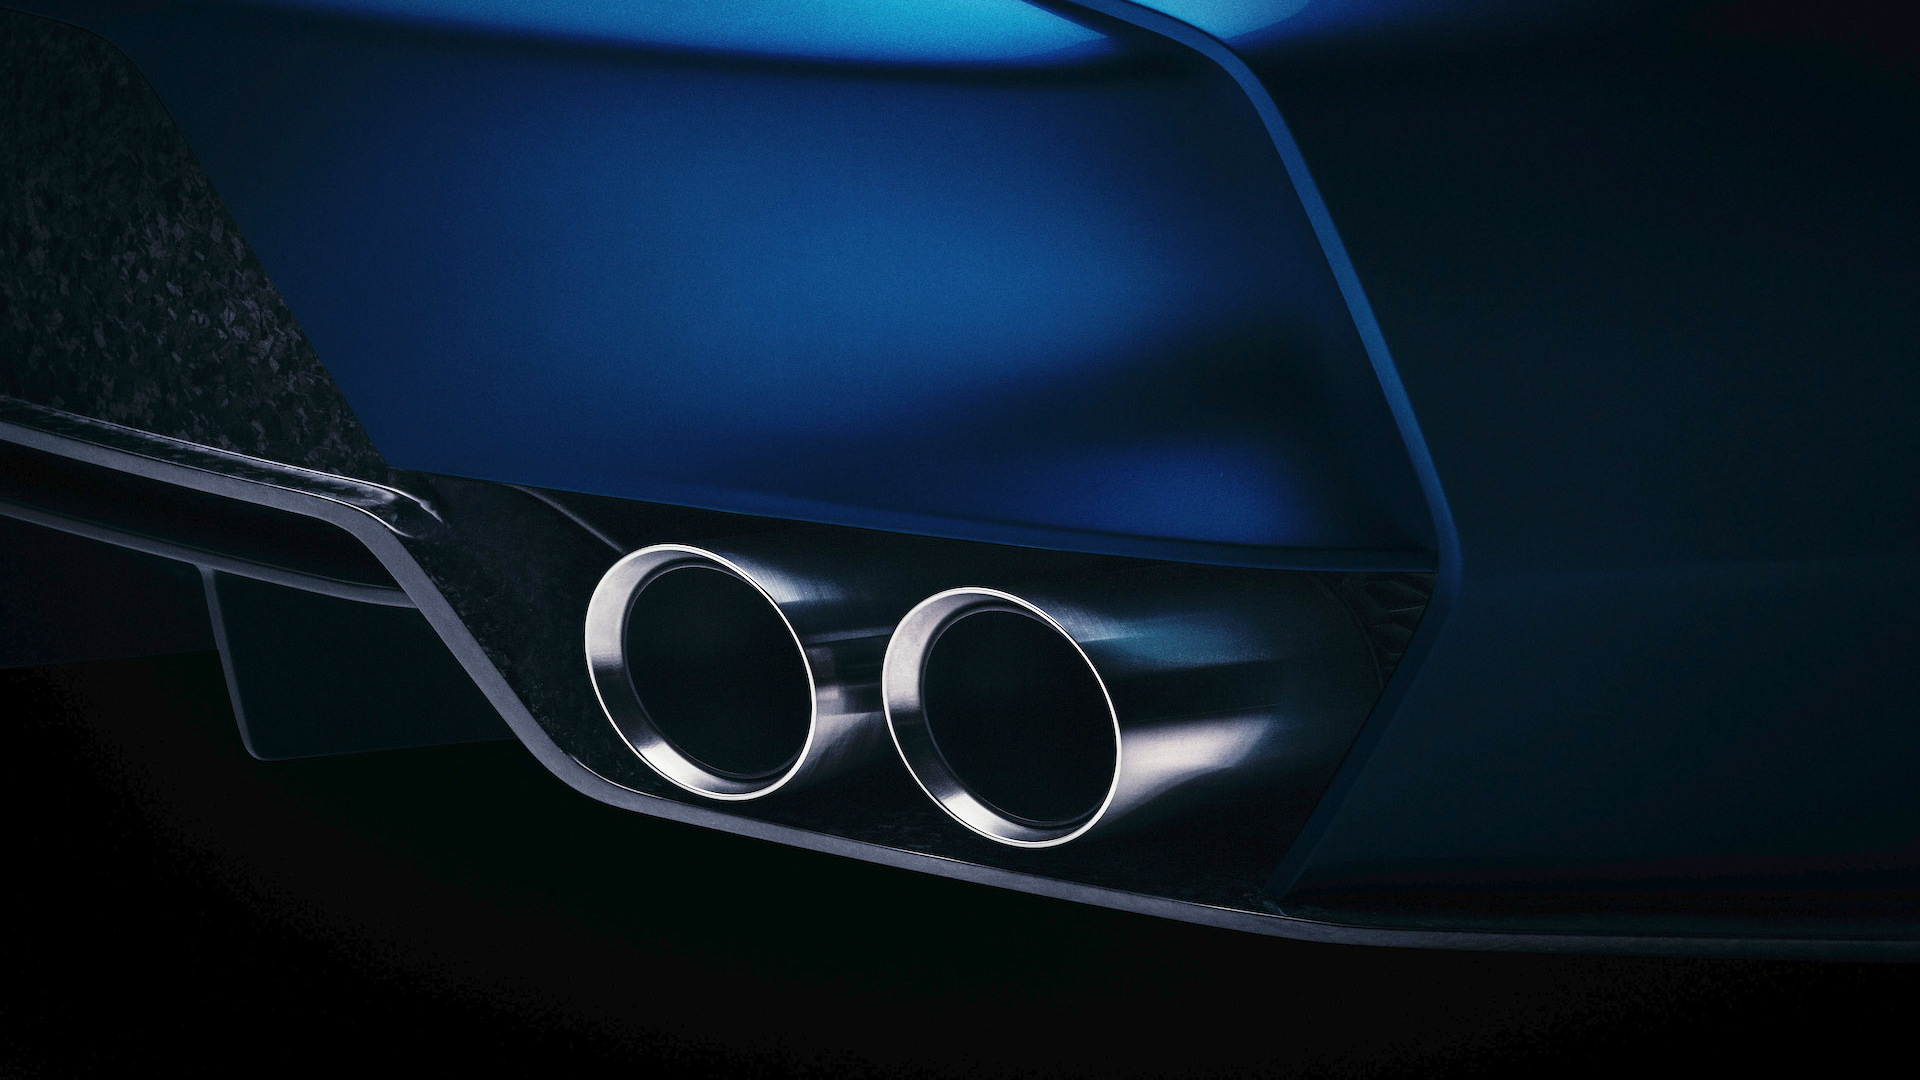 Teaser for Acura Type S Concept debuting at 2019 Monterey Car Week